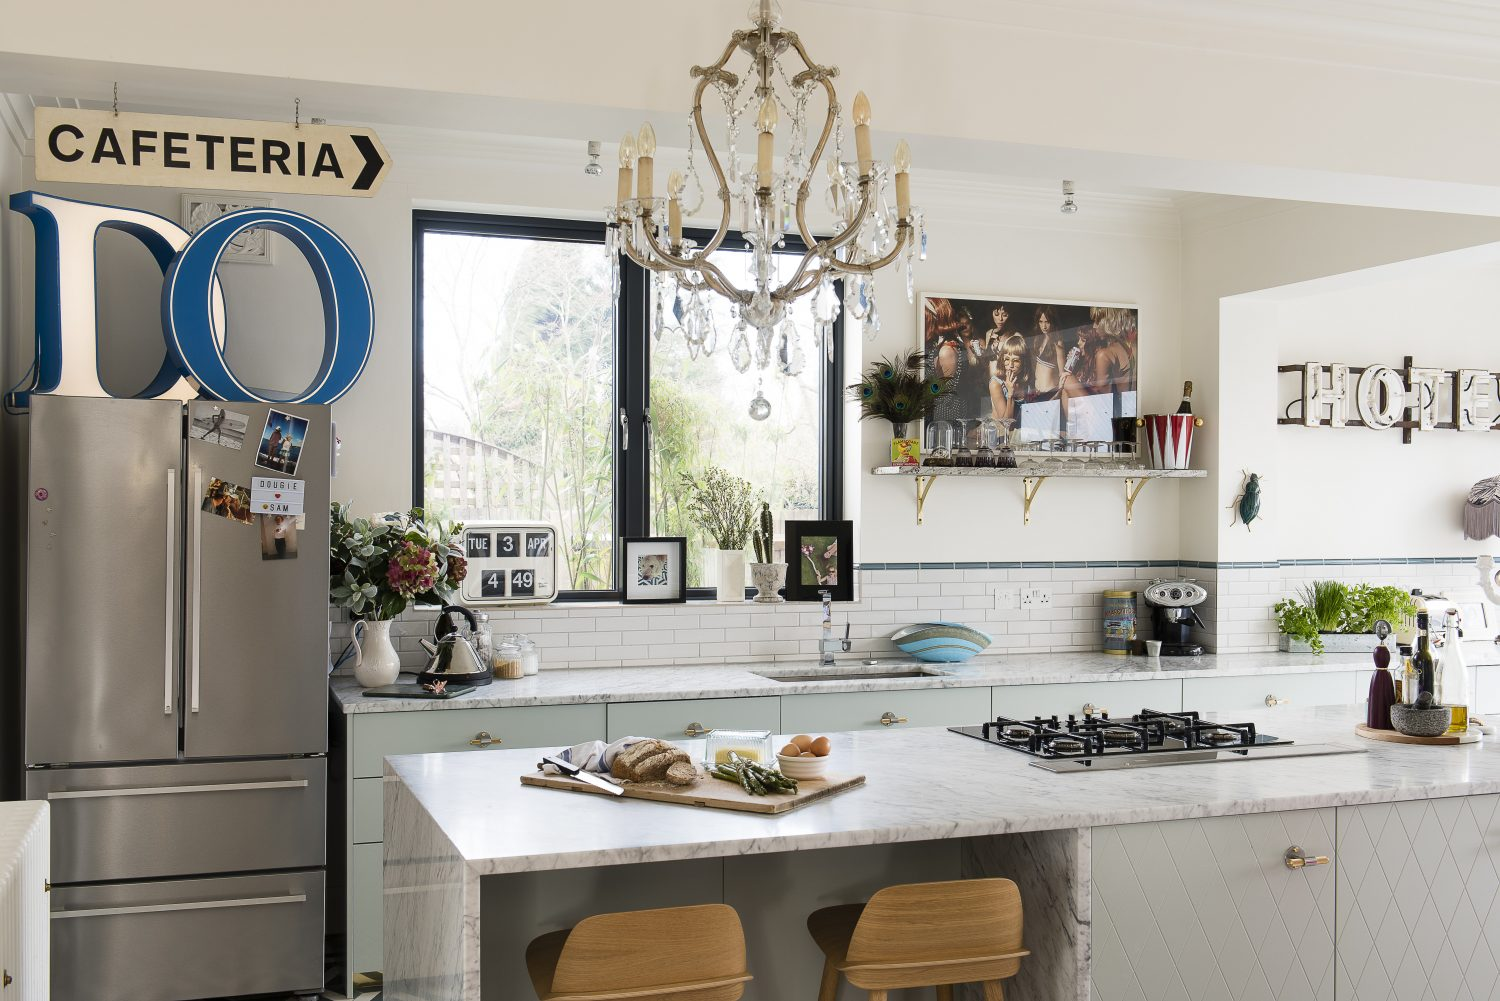 A huge marble island separates the cooking and dining areas